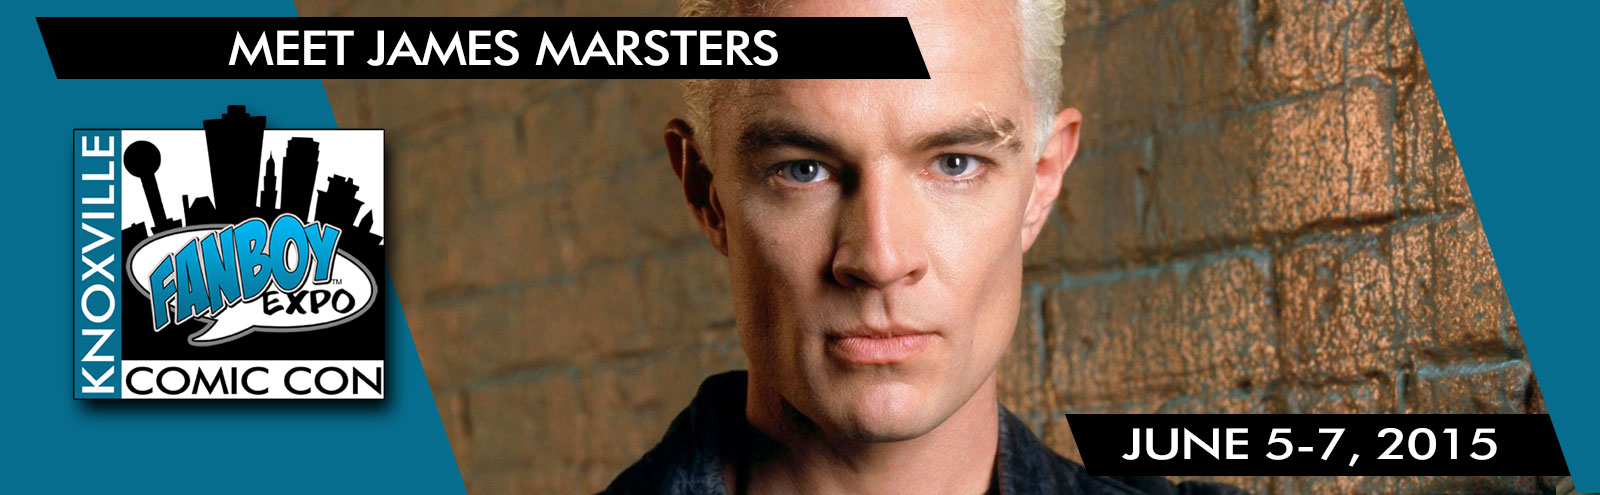 featured-james-marsters